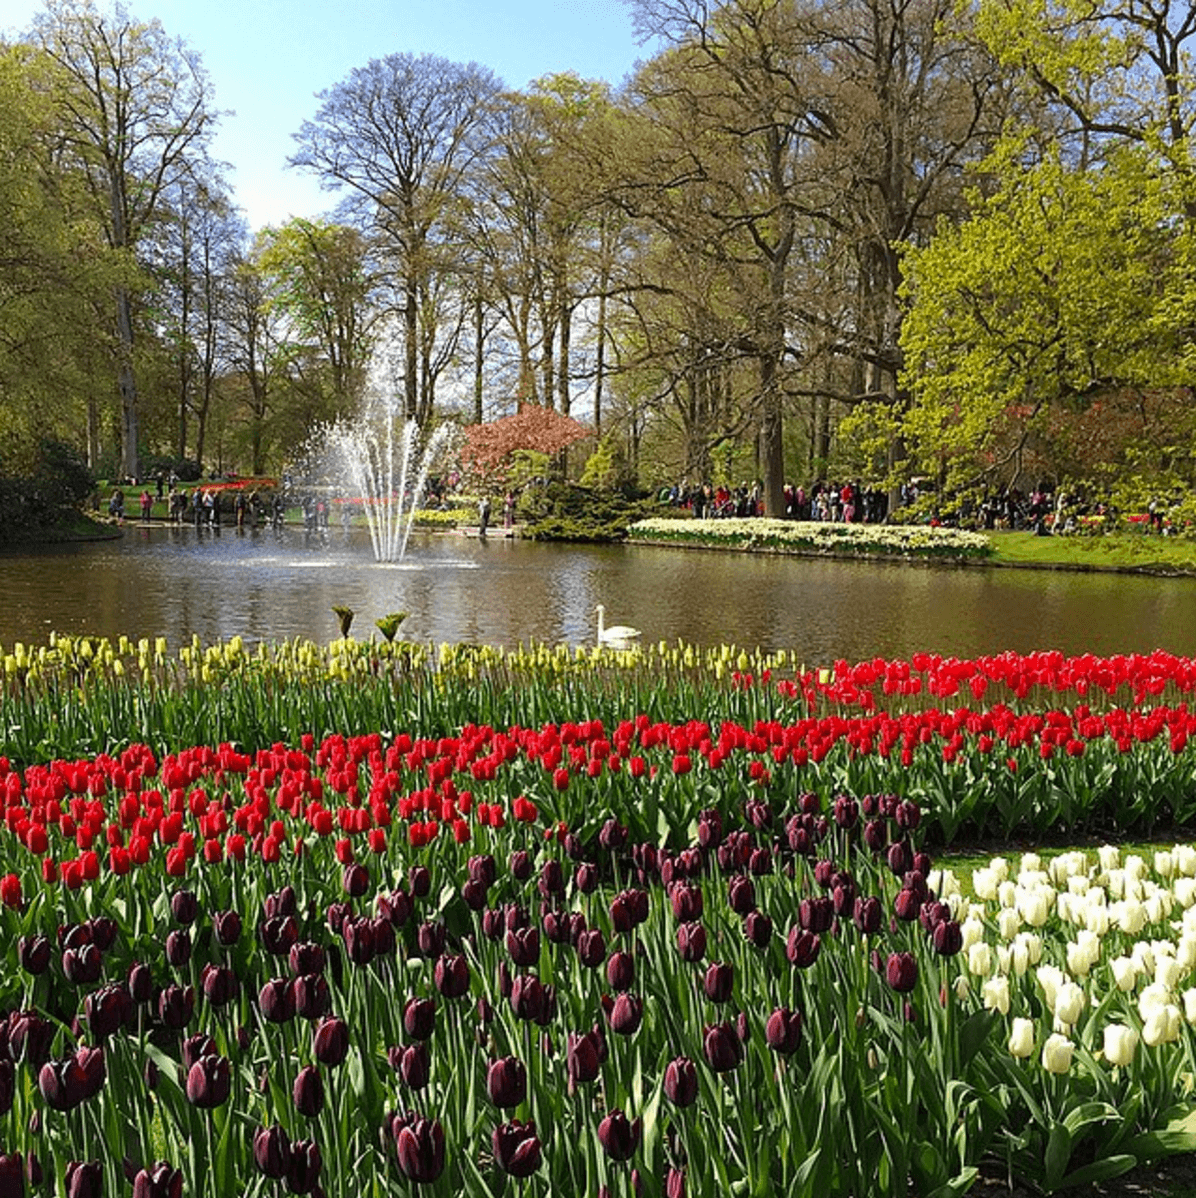 Fountains and ponds add to the beauty at Keukenhof Gardens